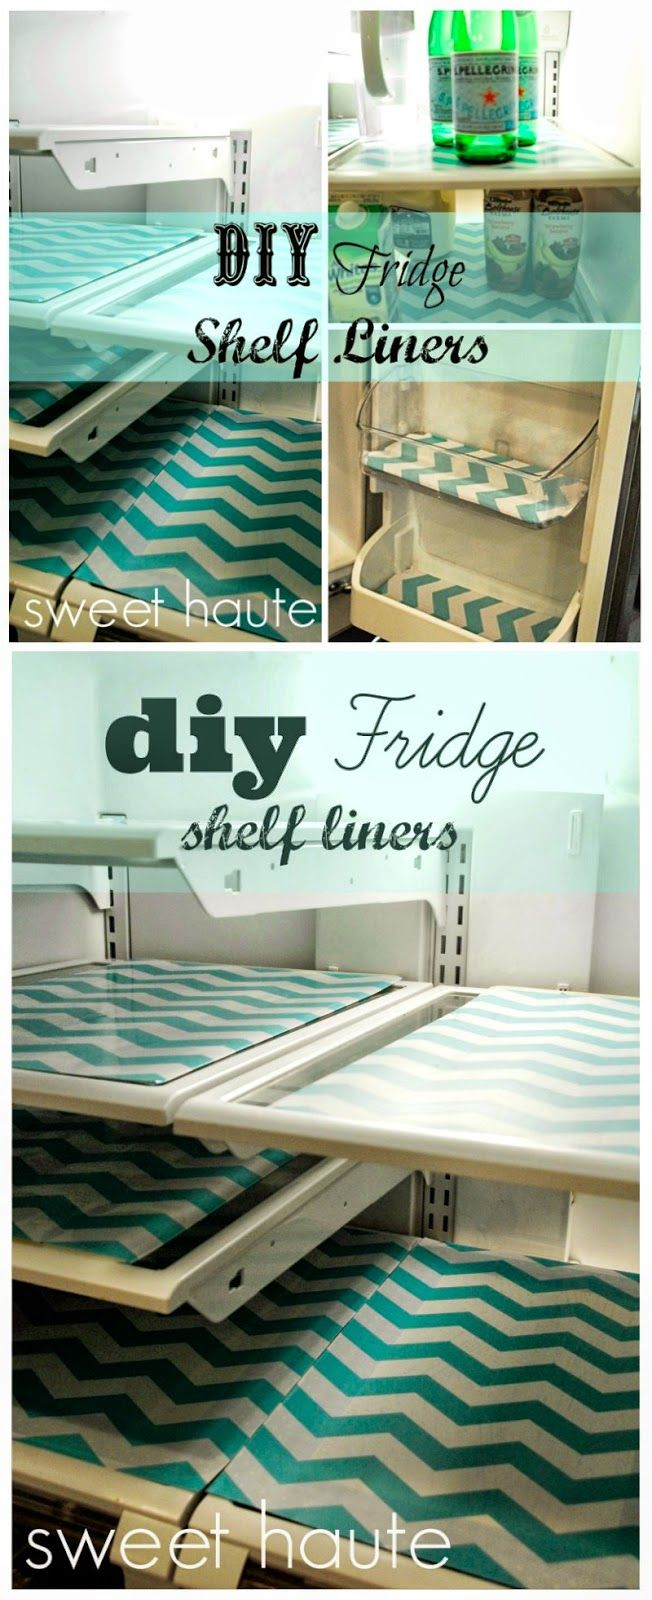 15 Do It Yourself Hacks And Clever Ideas To Upgrade Your Kitchen Shelf Linerskitchen